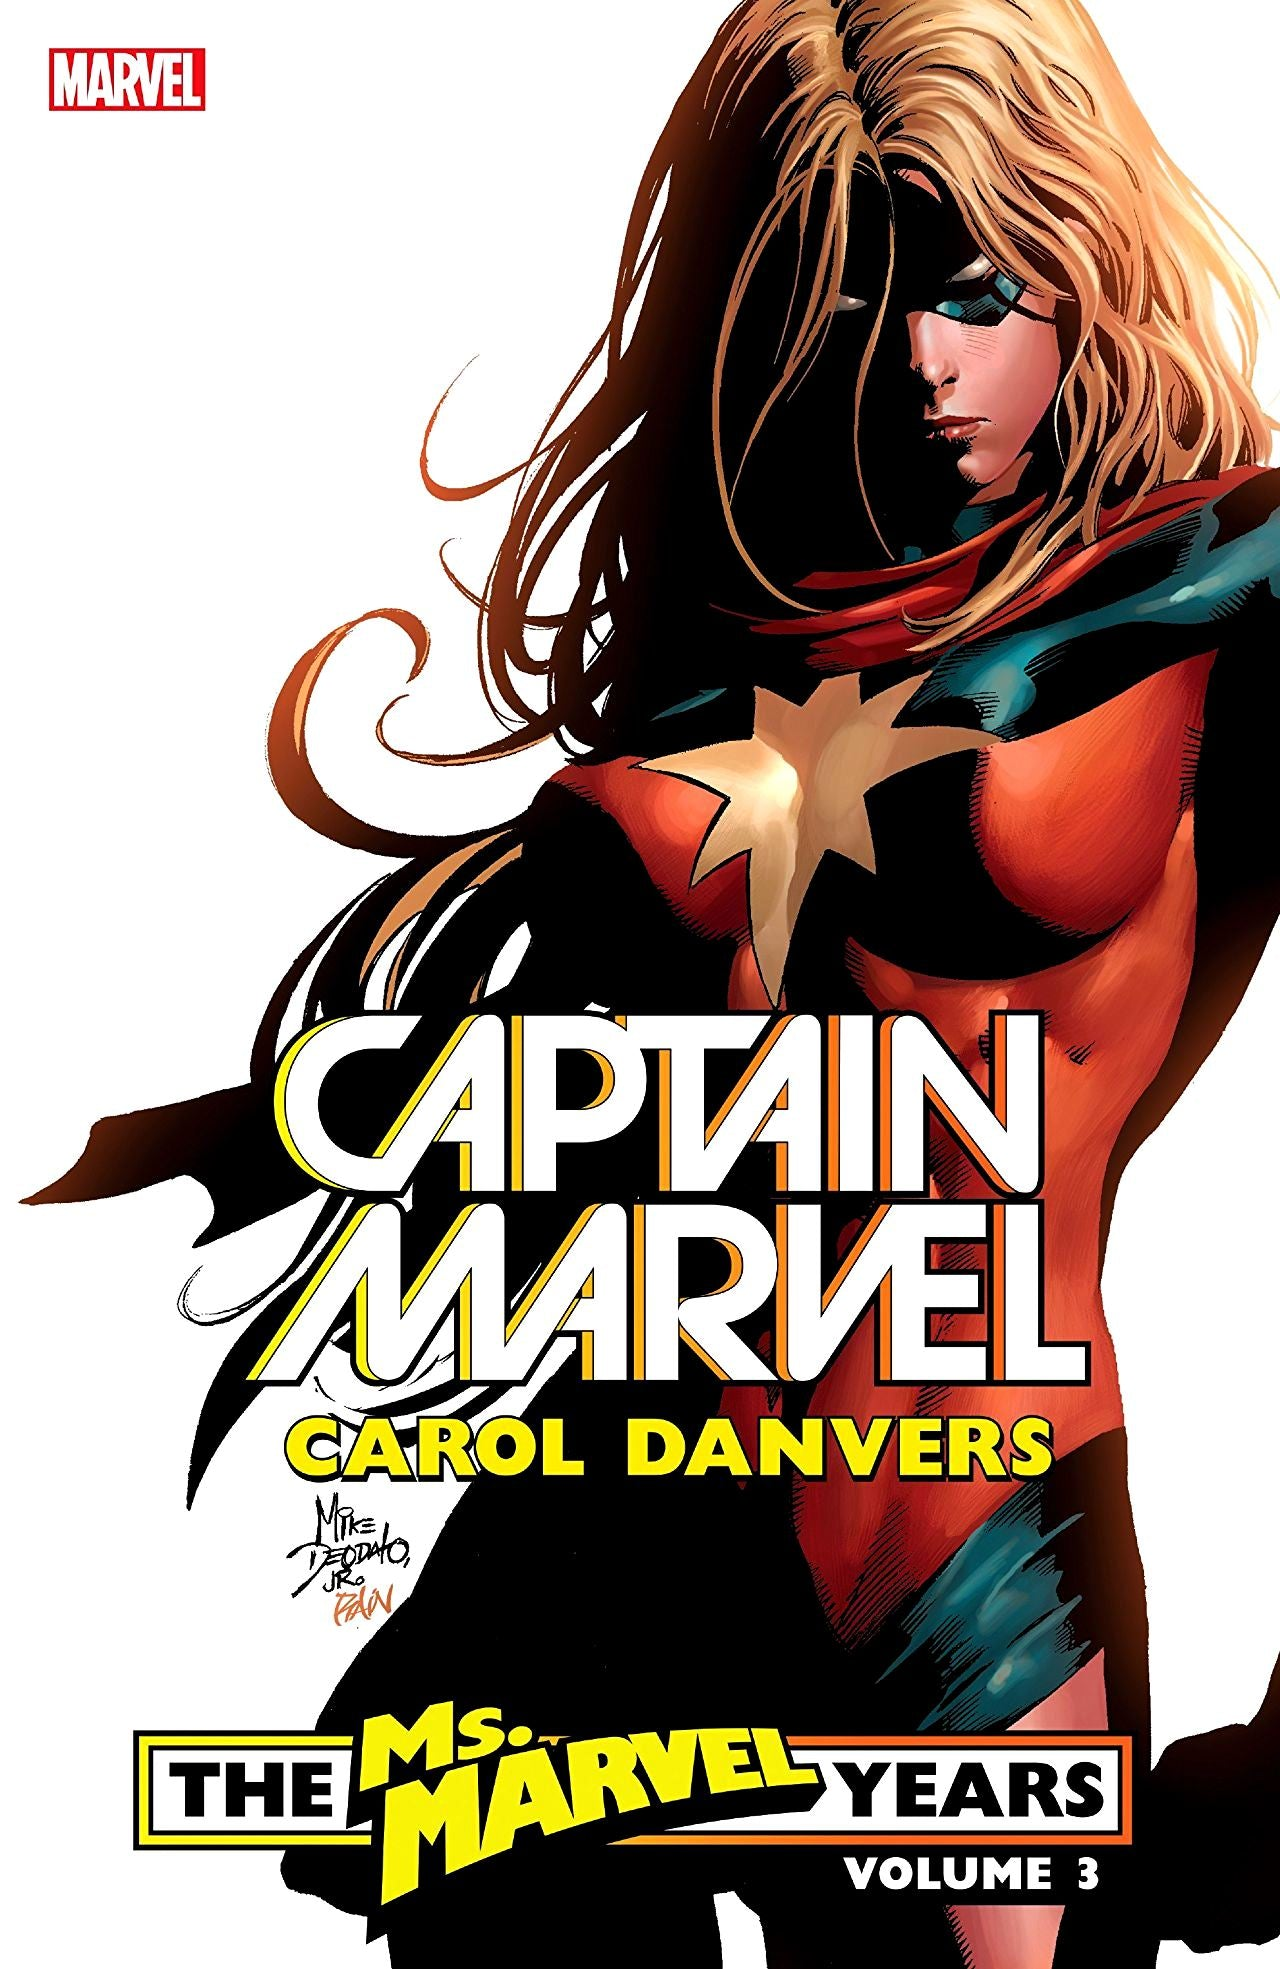 Captain Marvel: Carol Danvers - The Ms. Marvel Years Volume 3